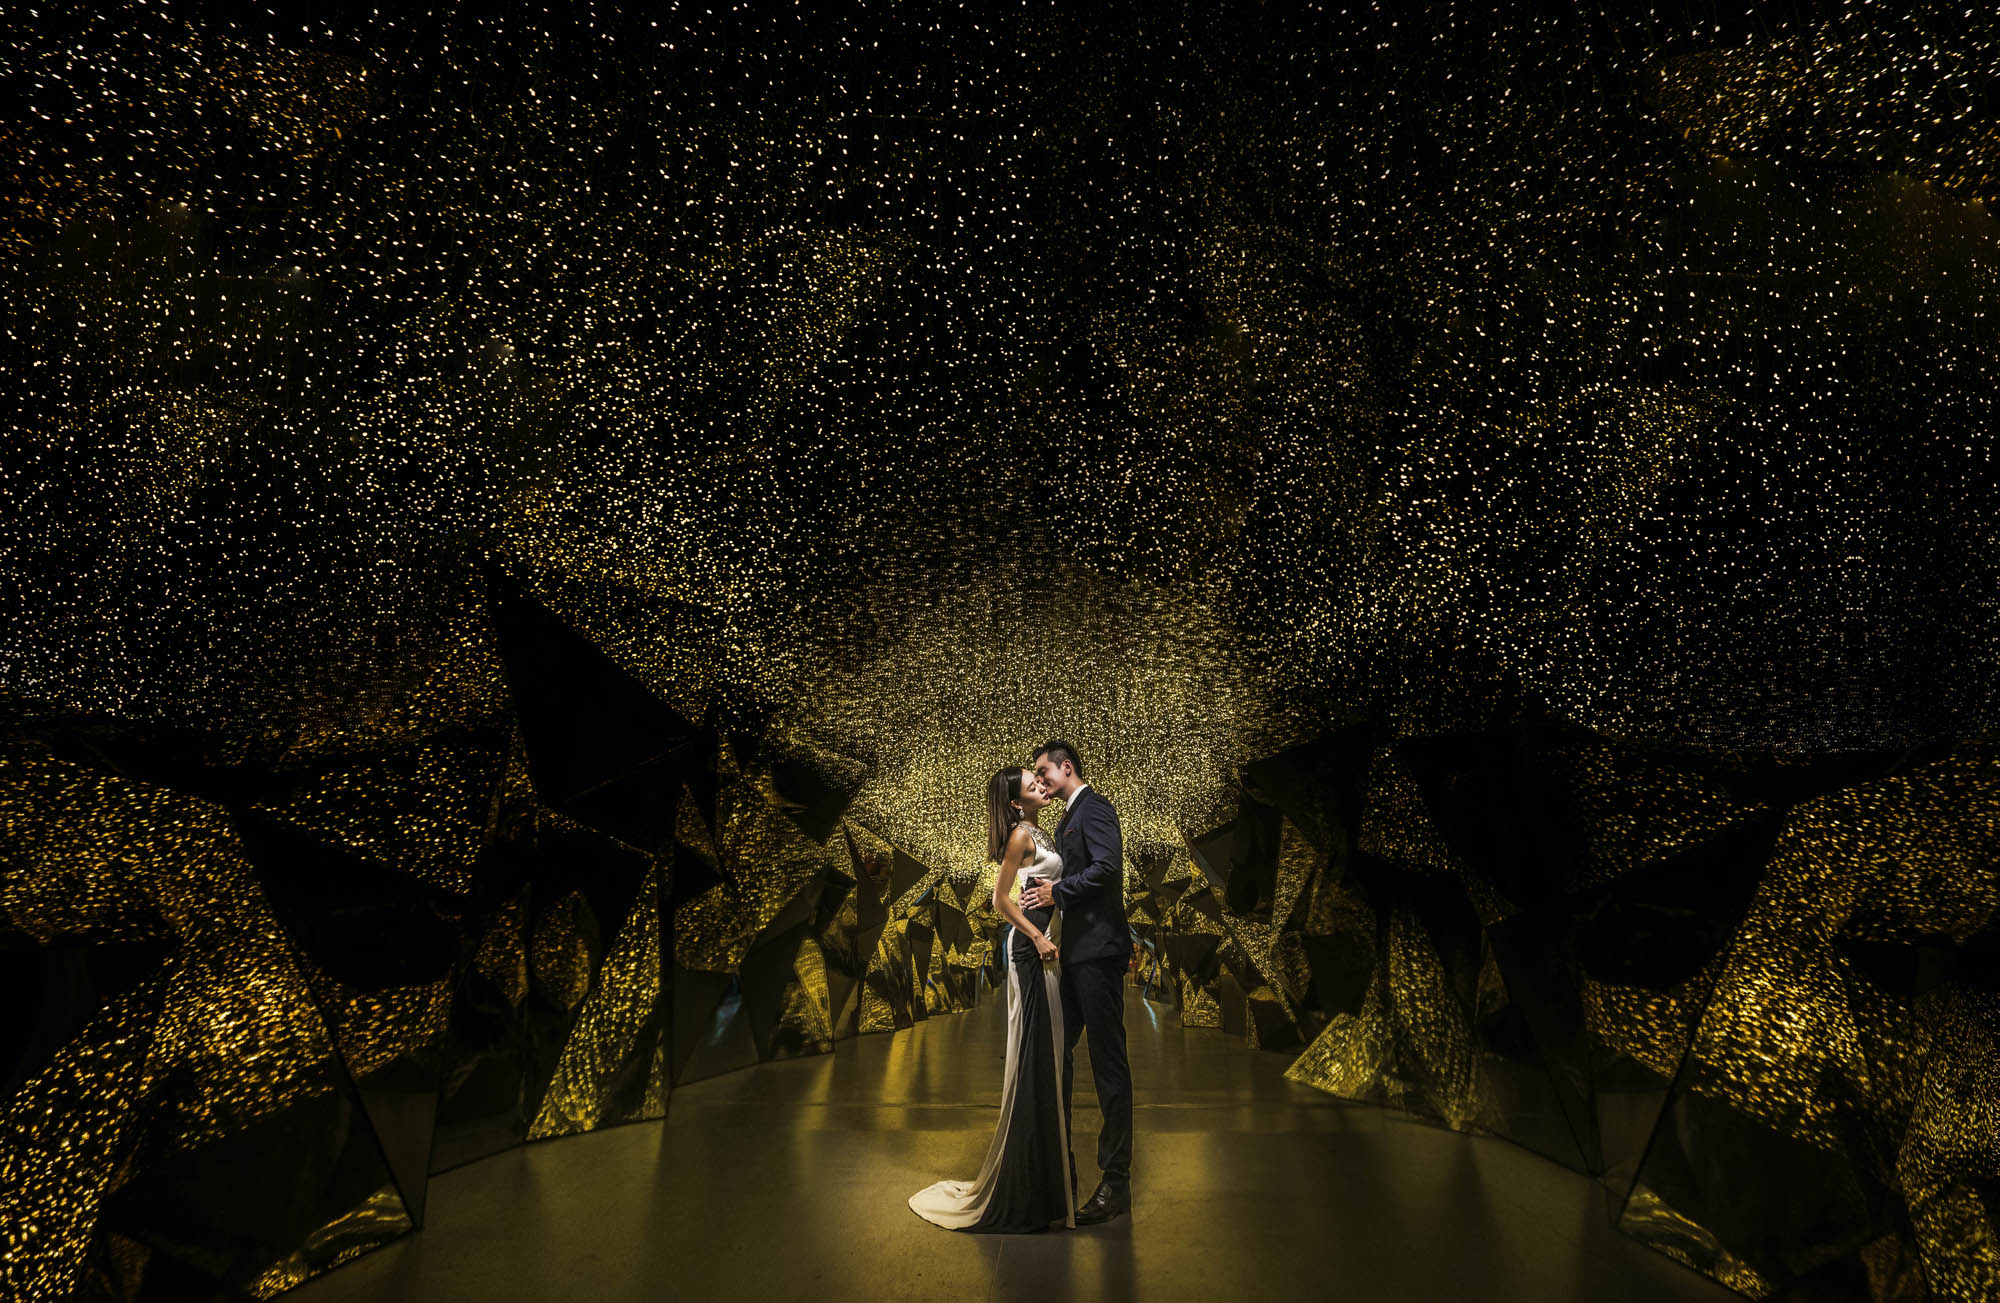 Bride and groom in epic gallery of twinkling fairy lights, by CM Leung